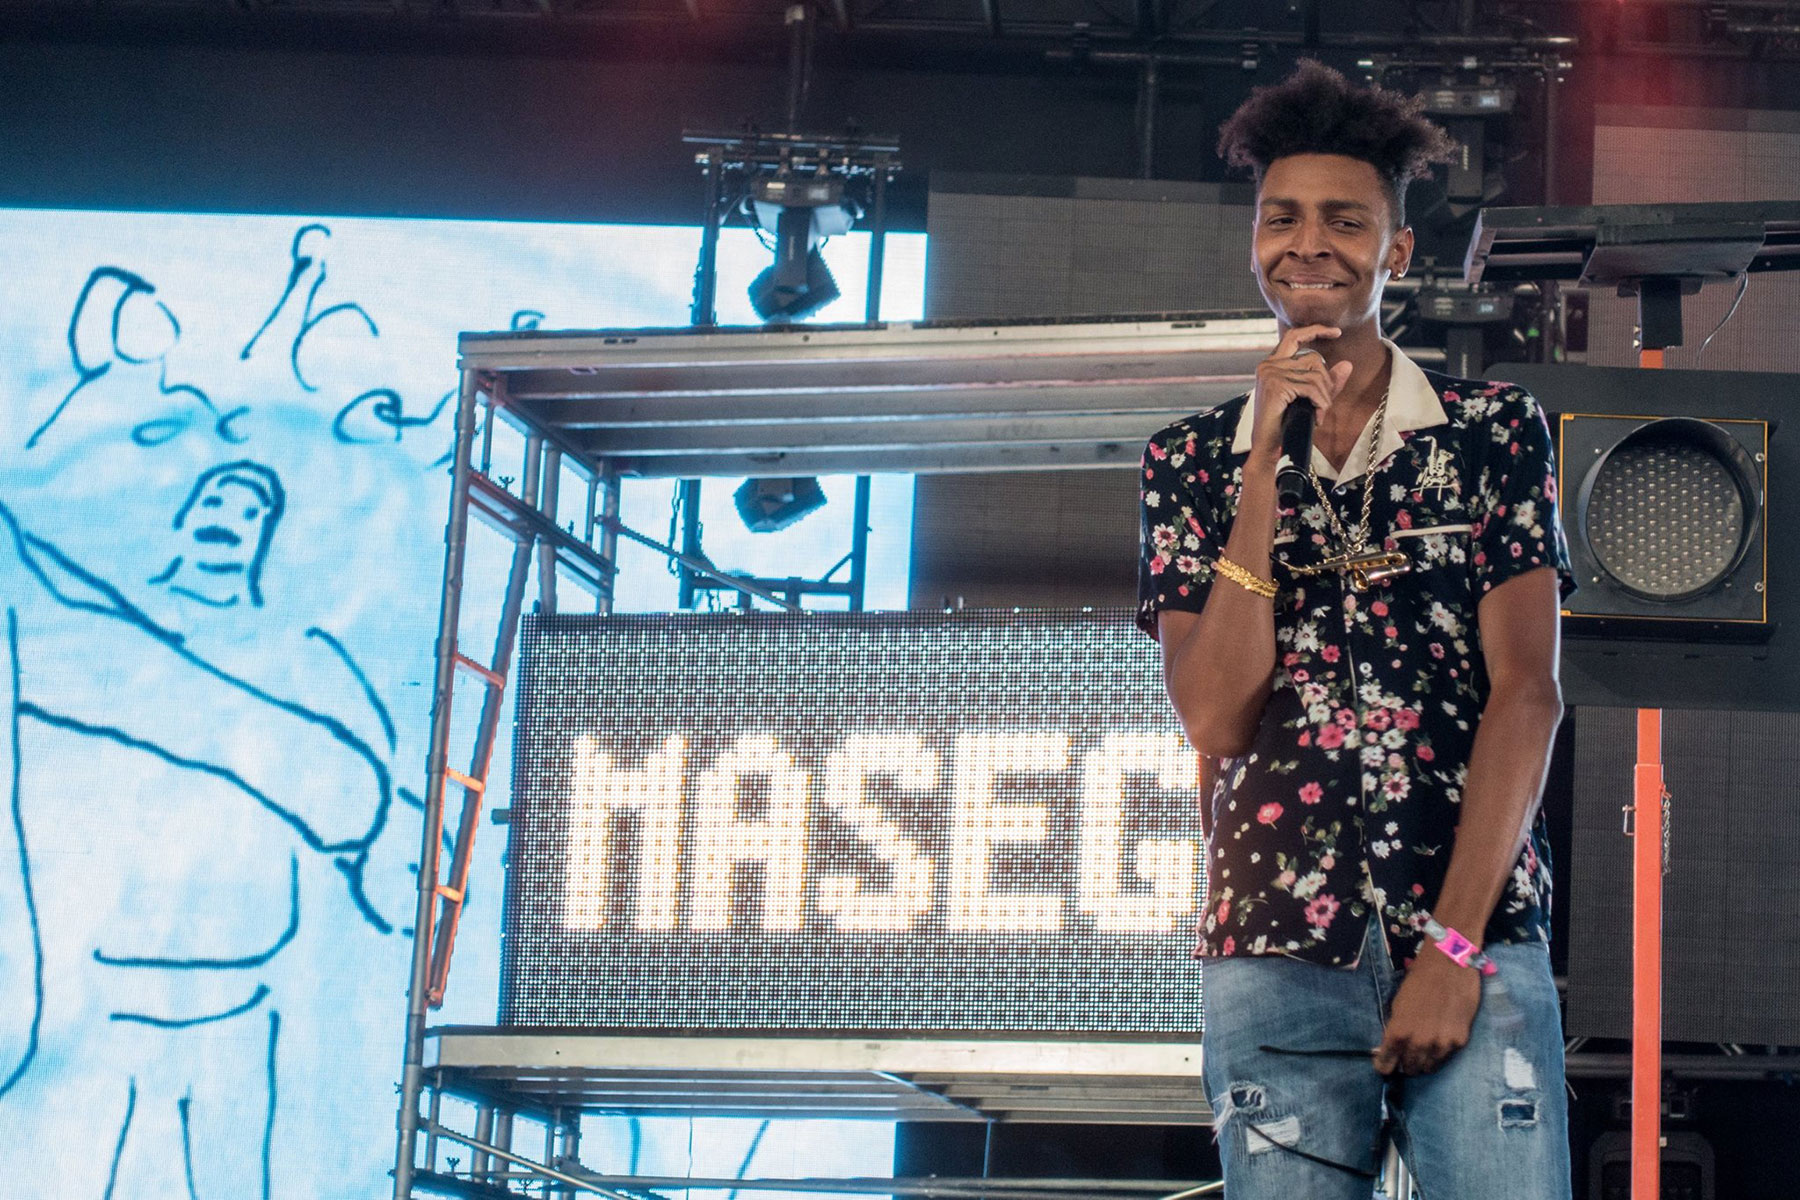 Masego at Coachella